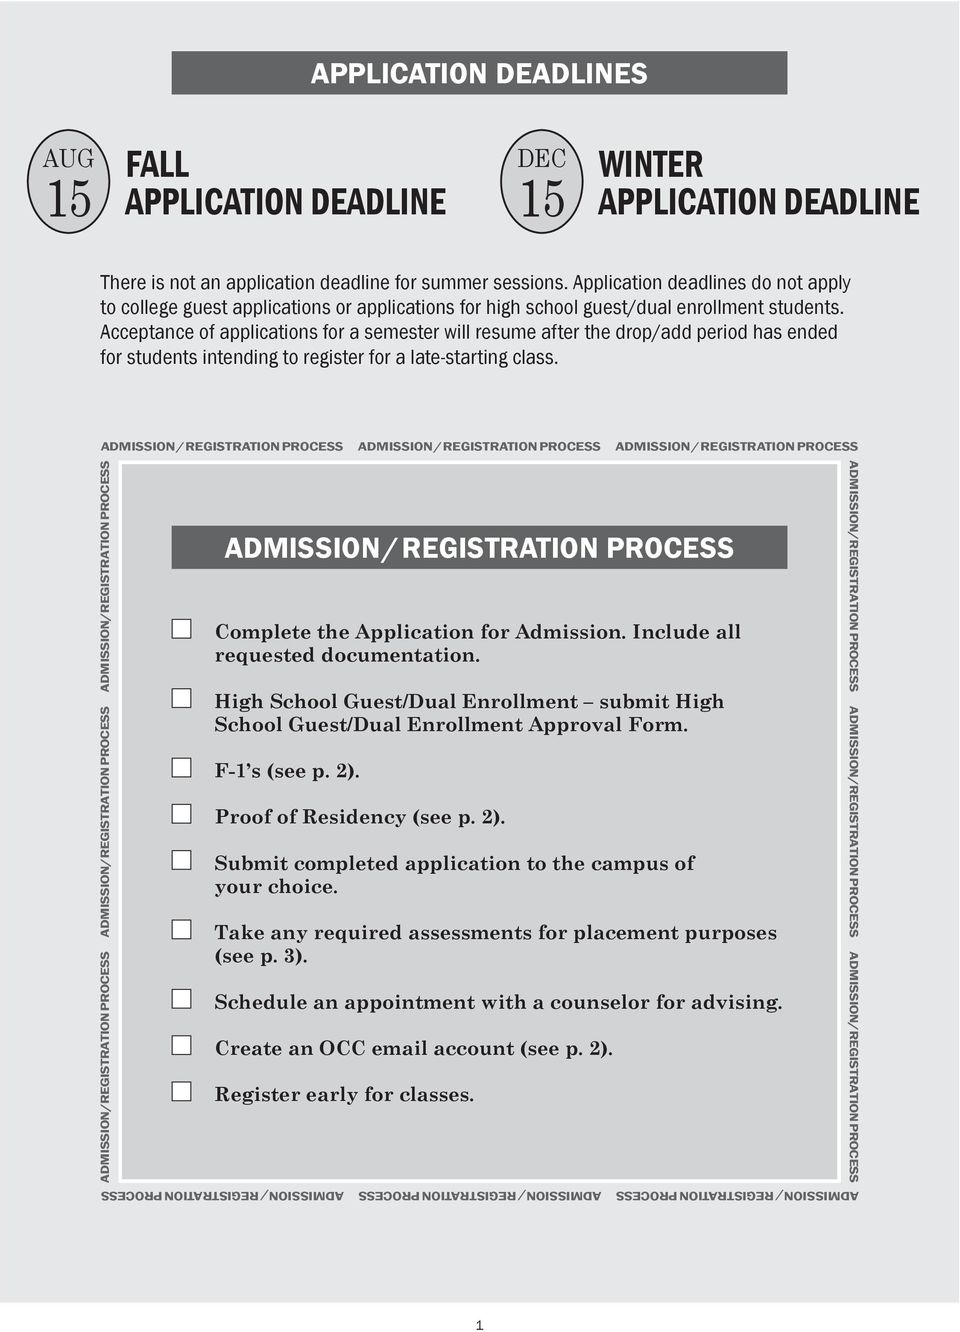 Acceptance of applications for a semester will resume after the drop/add period has ended for students intending to register for a late-starting class.